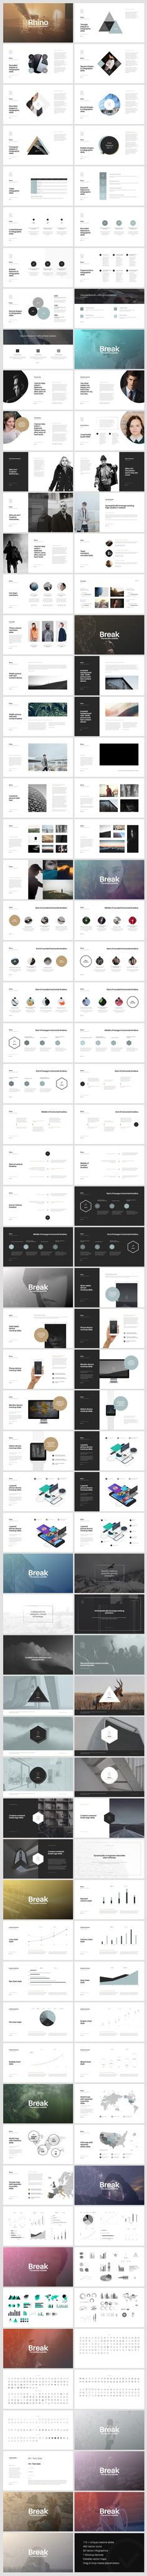 Rhino Keynote Presentation Template by GoaShape on @creativemarket